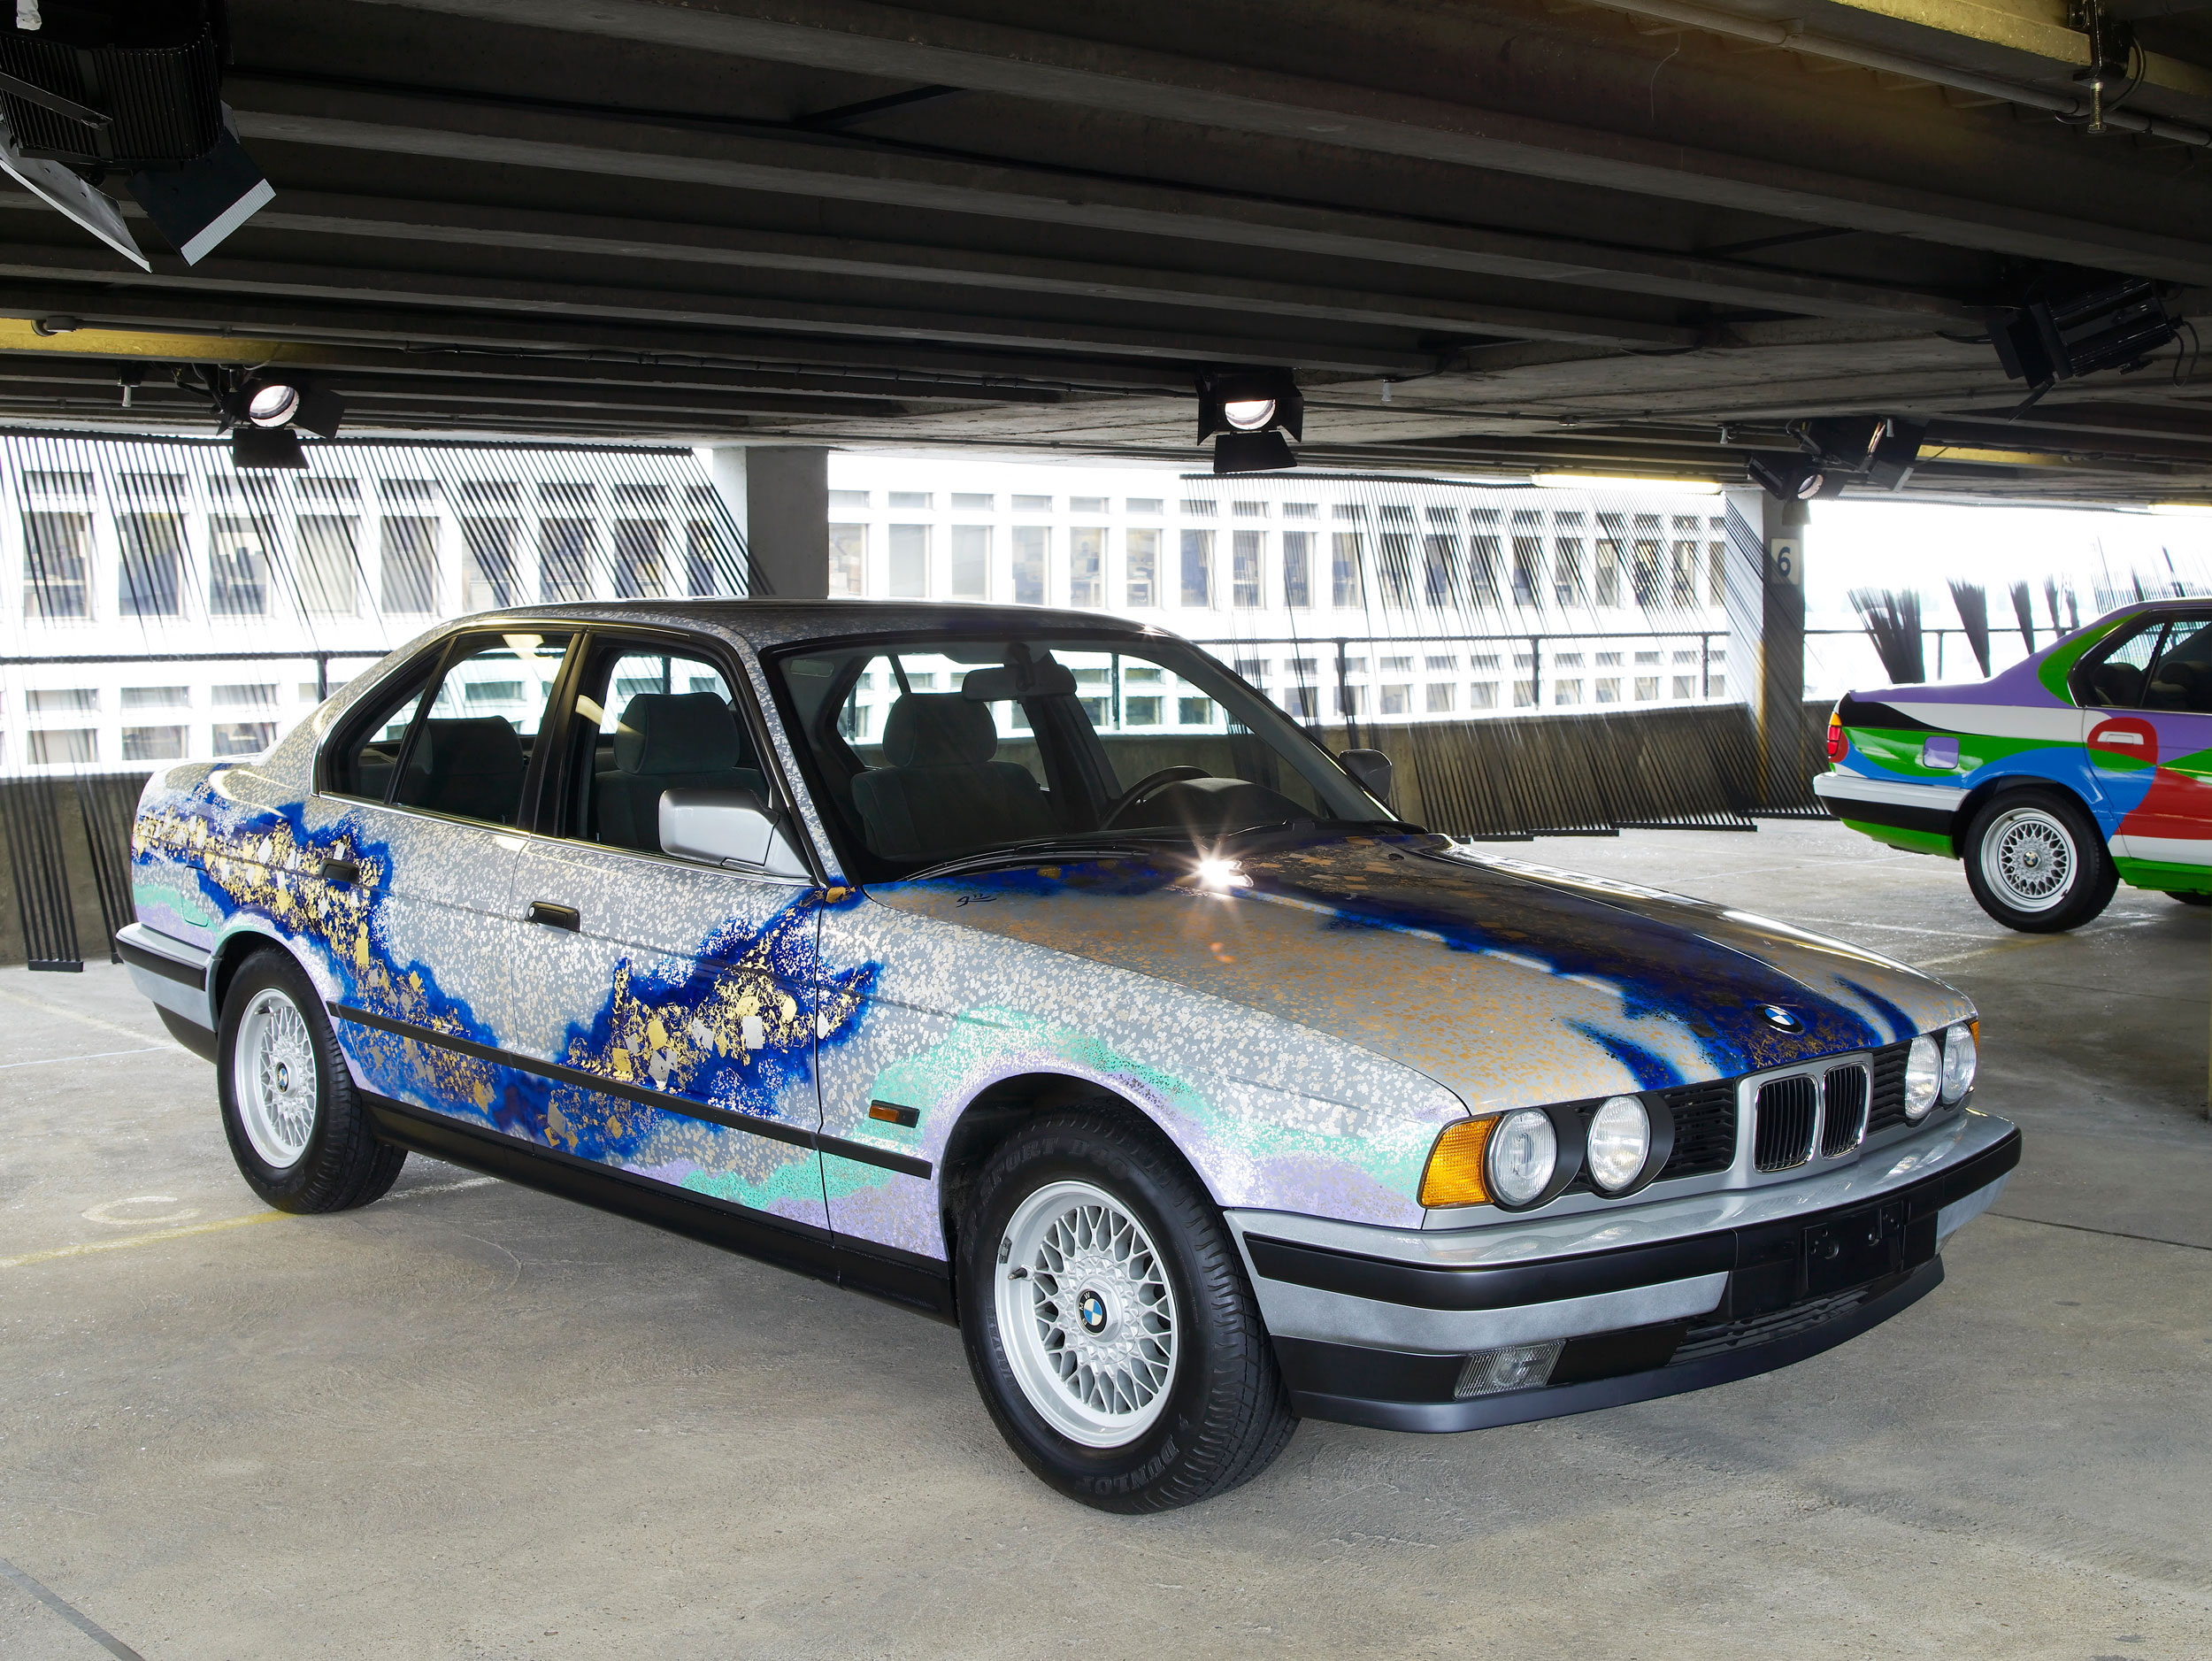 Bmw Art Car Collection 35 Years Of Artful Paint Jobs